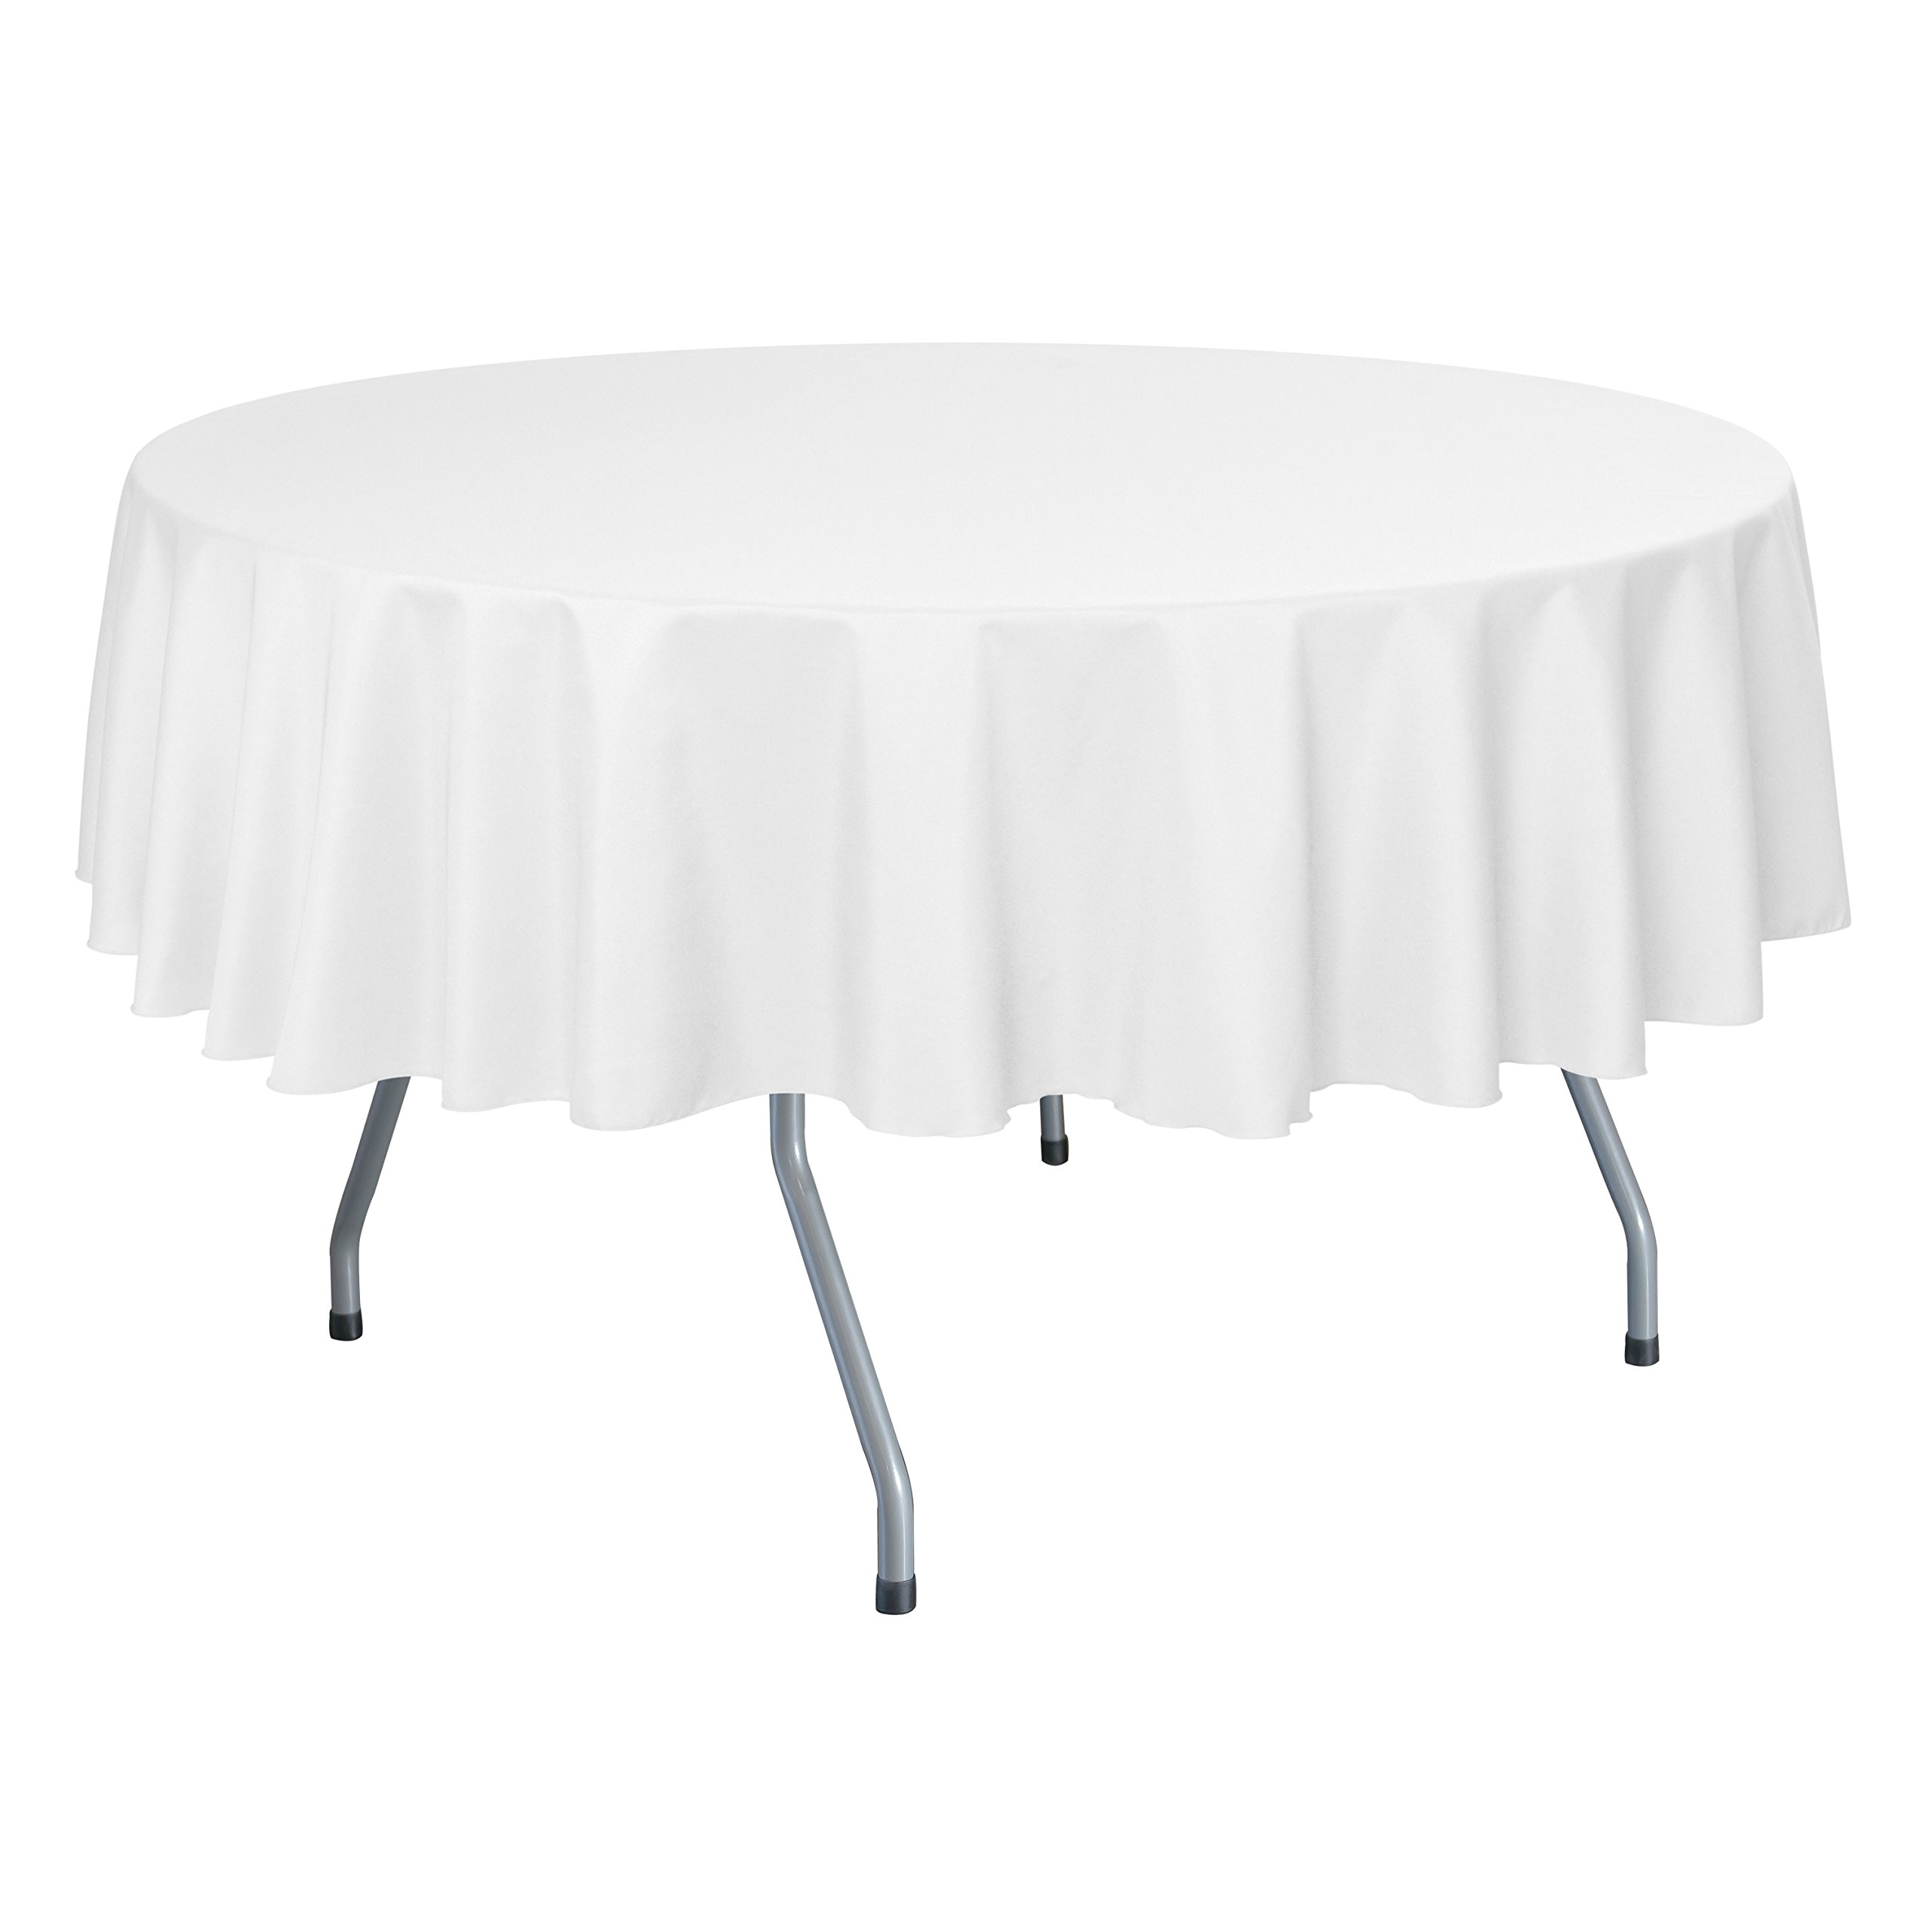 Ultimate Textile (10 Pack) 84-Inch Round Polyester Linen Tablecloth - for Wedding, Restaurant or Banquet use, White